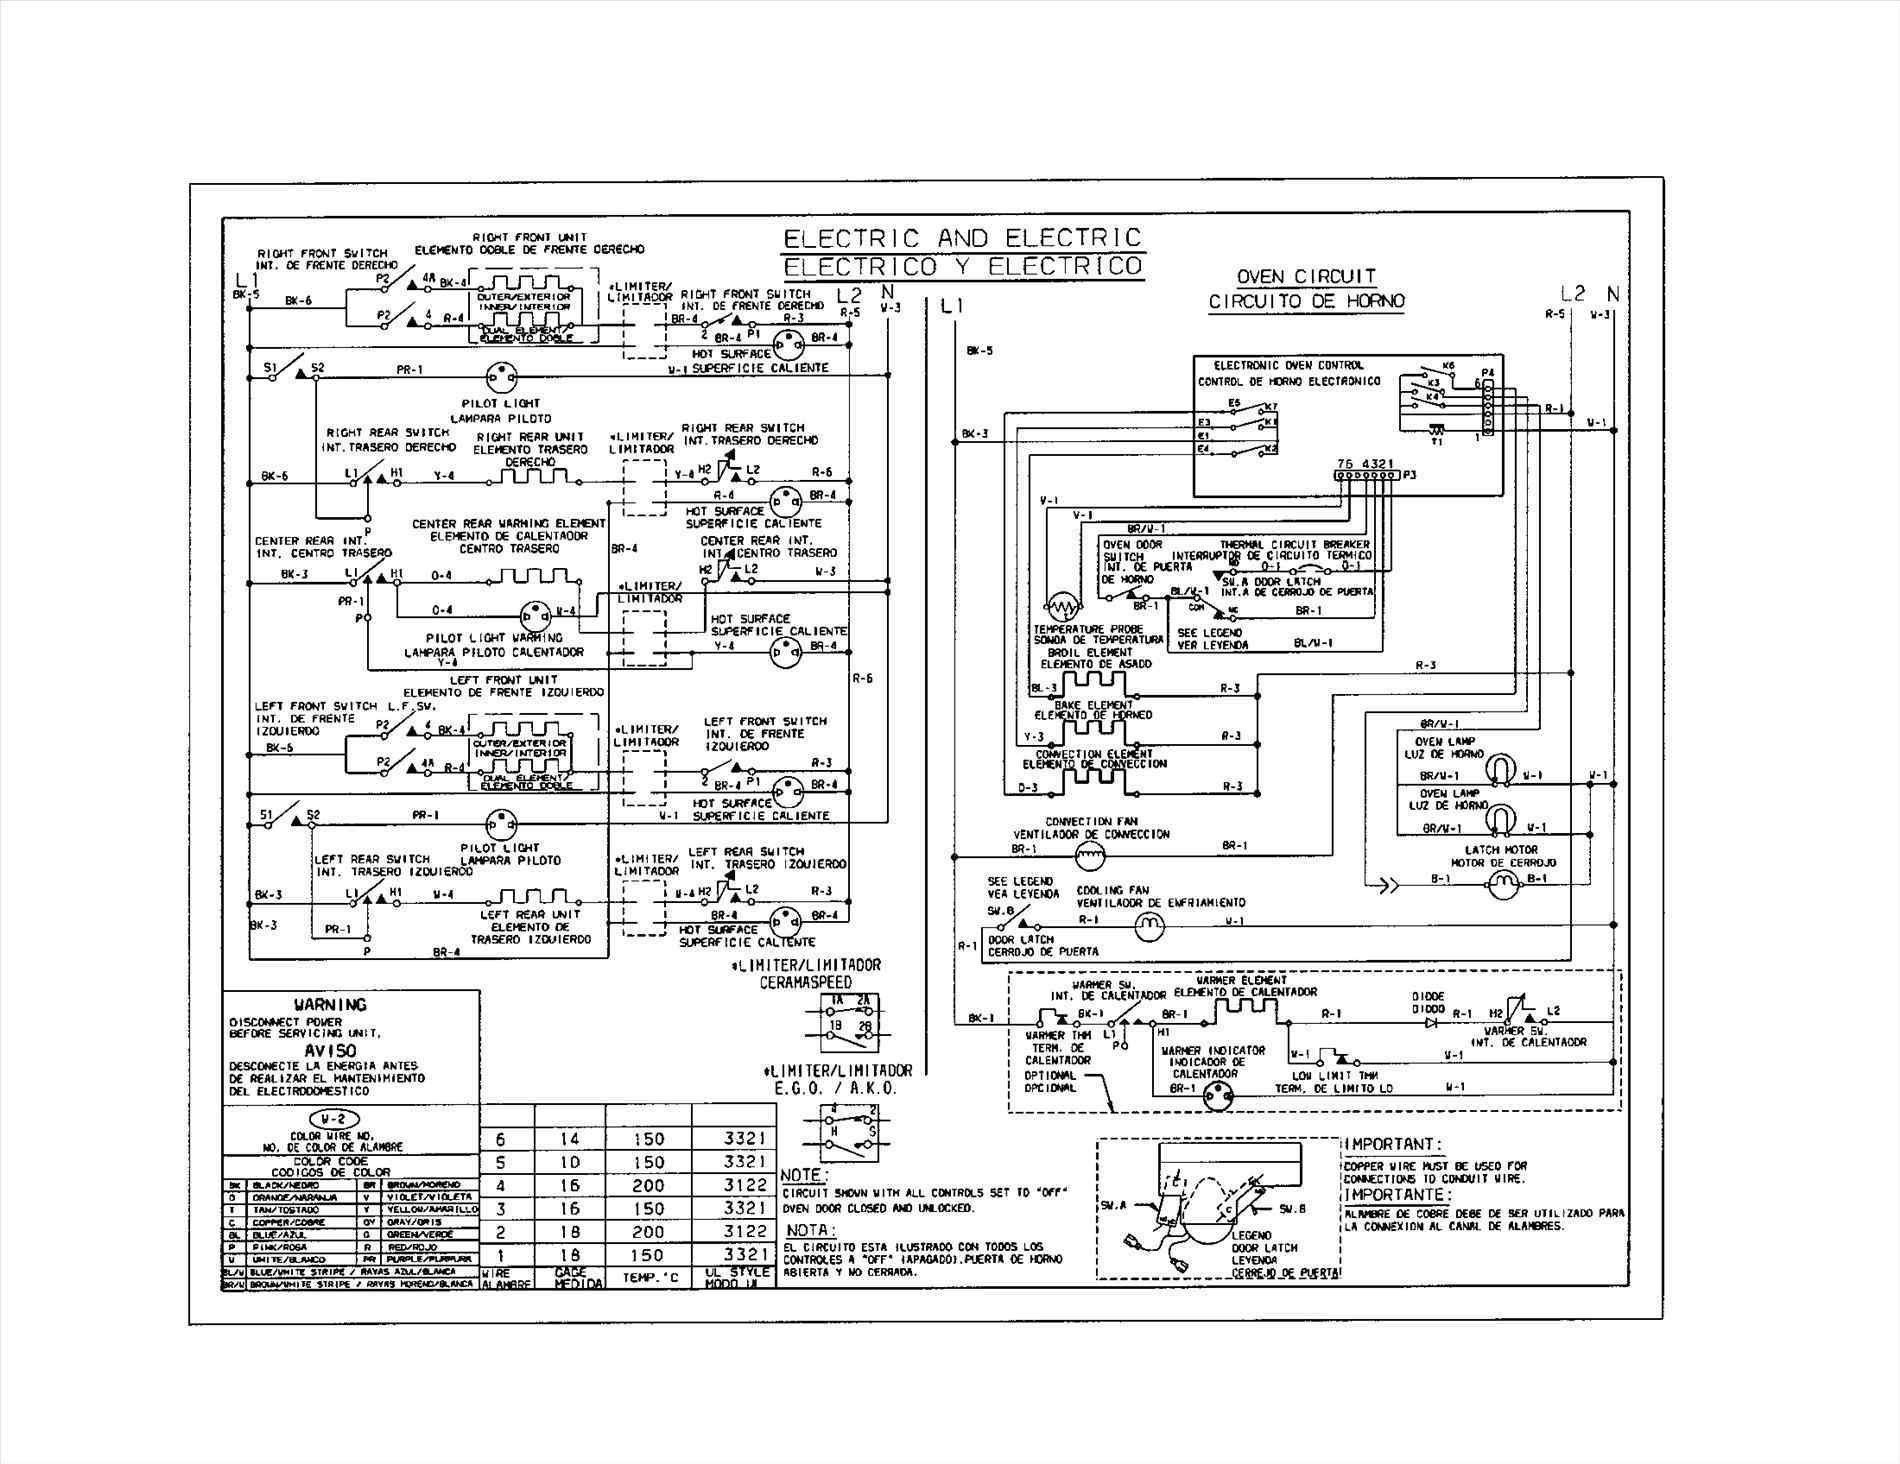 hight resolution of related post whirlpool ler4634eq2 new whirlpool dryer wiring diagram natebird from whirlpool ler4634eq2